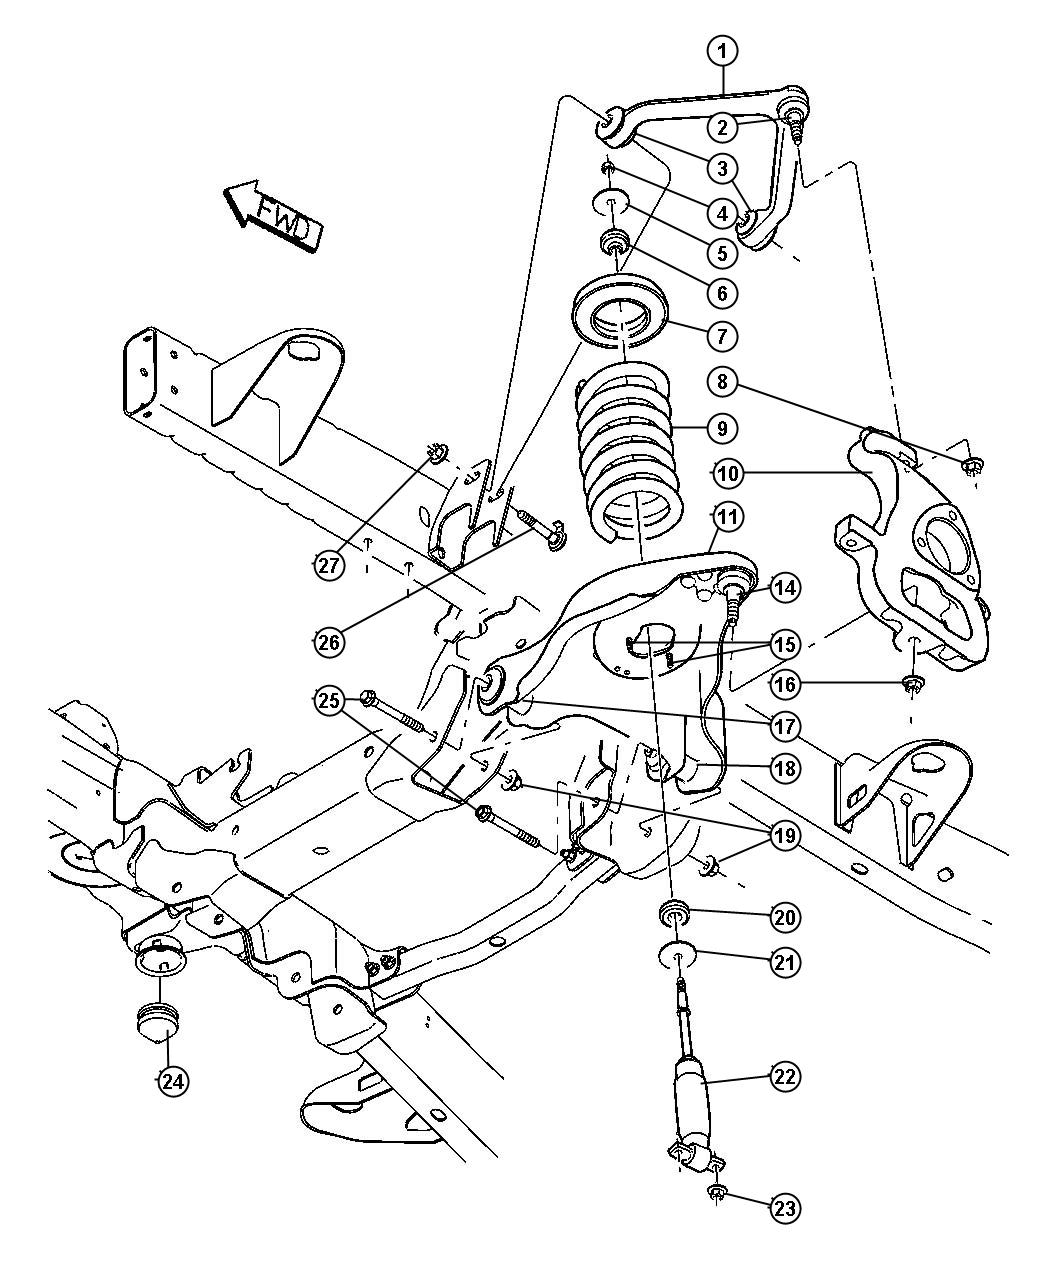 05 f350 front suspension diagram  05  free engine image